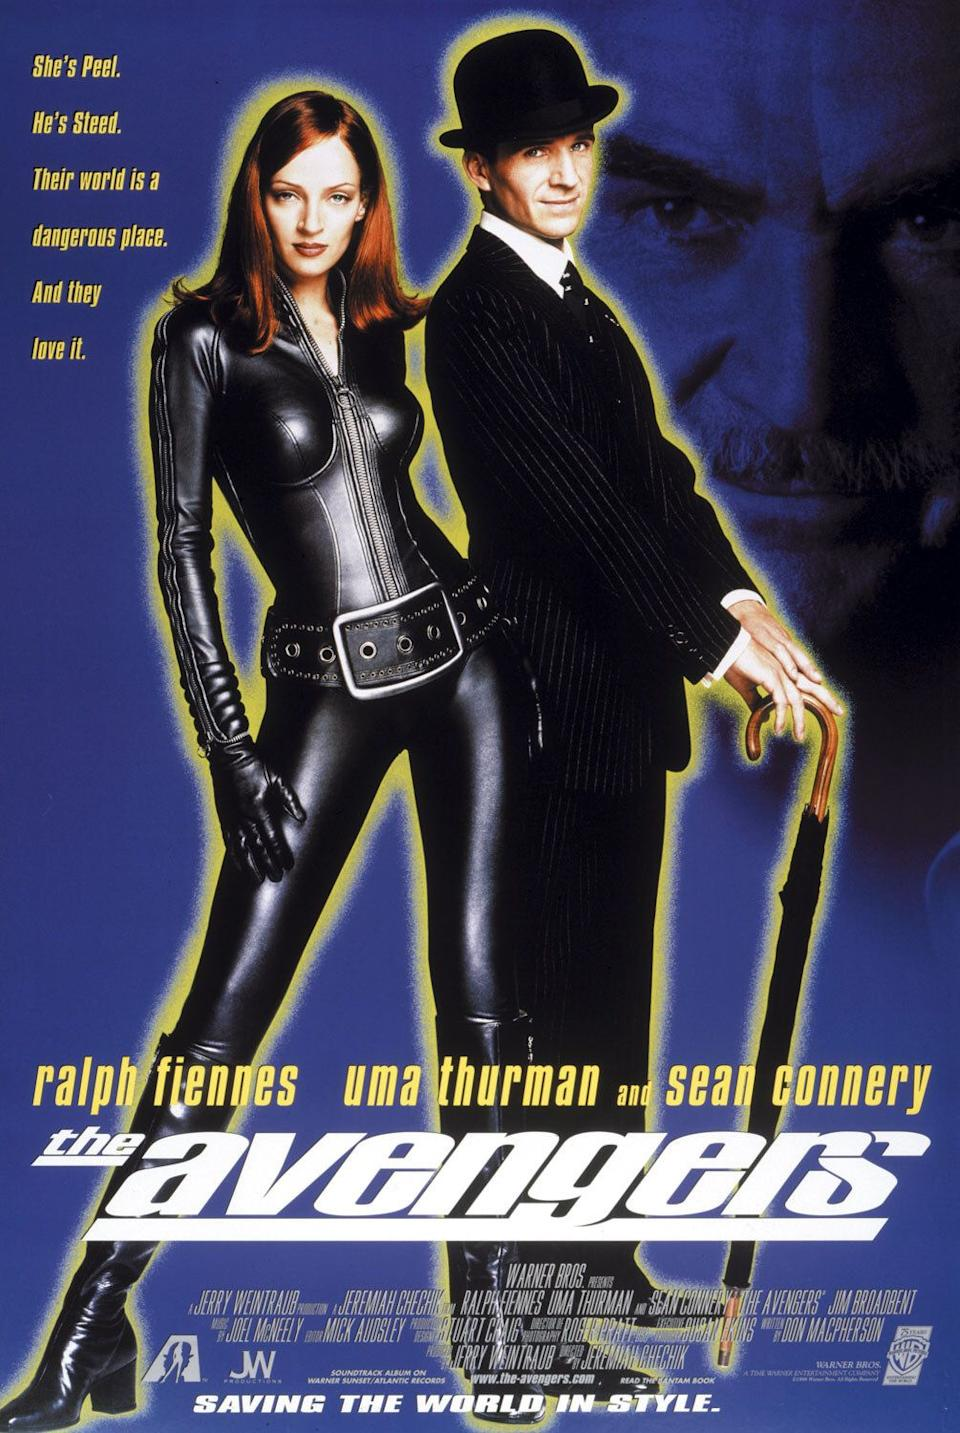 The poster for The Avengers, featuring Uma Thurman, Ralph Fiennes and Sean Connery. (Warner Bros)